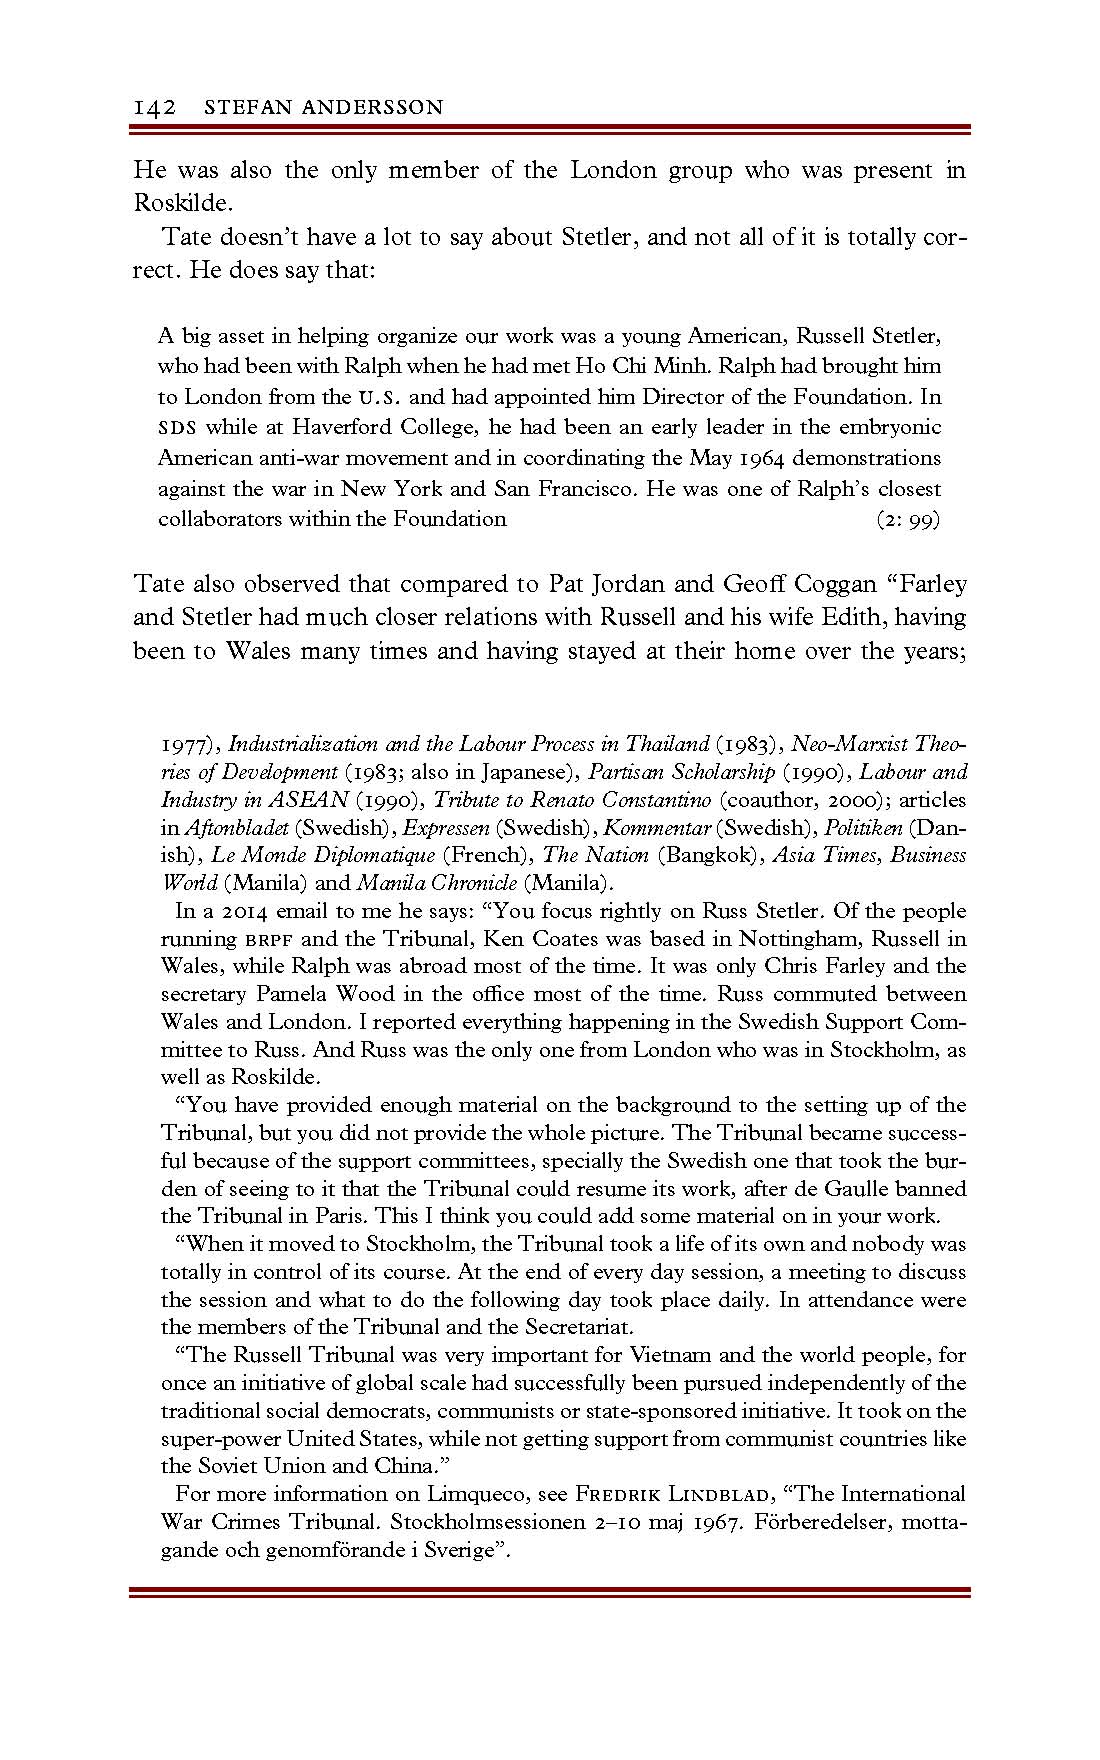 Anderson-- Pages from RJ 3402 050 red-5 (2)-1_Page_08